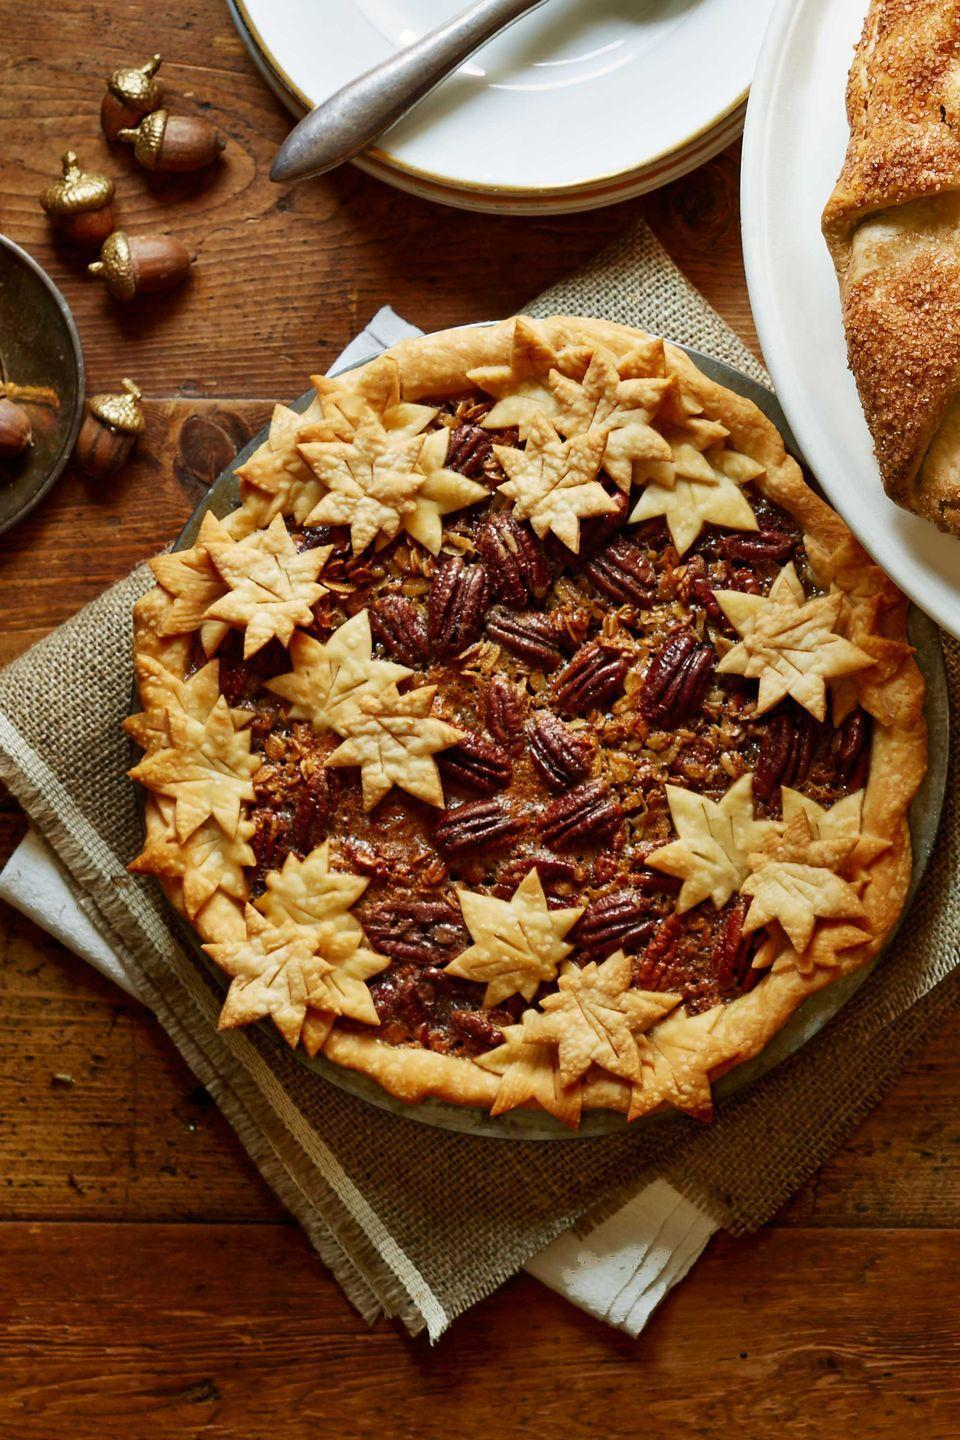 """<p>Looking for a classic dessert with a twist? Try out this decadent pecan pie recipe.</p><p><strong><a href=""""https://www.countryliving.com/food-drinks/recipes/a5863/granola-pecan-pie-recipe-clx1114/"""" rel=""""nofollow noopener"""" target=""""_blank"""" data-ylk=""""slk:Get the recipe"""" class=""""link rapid-noclick-resp"""">Get the recipe</a>.</strong></p>"""